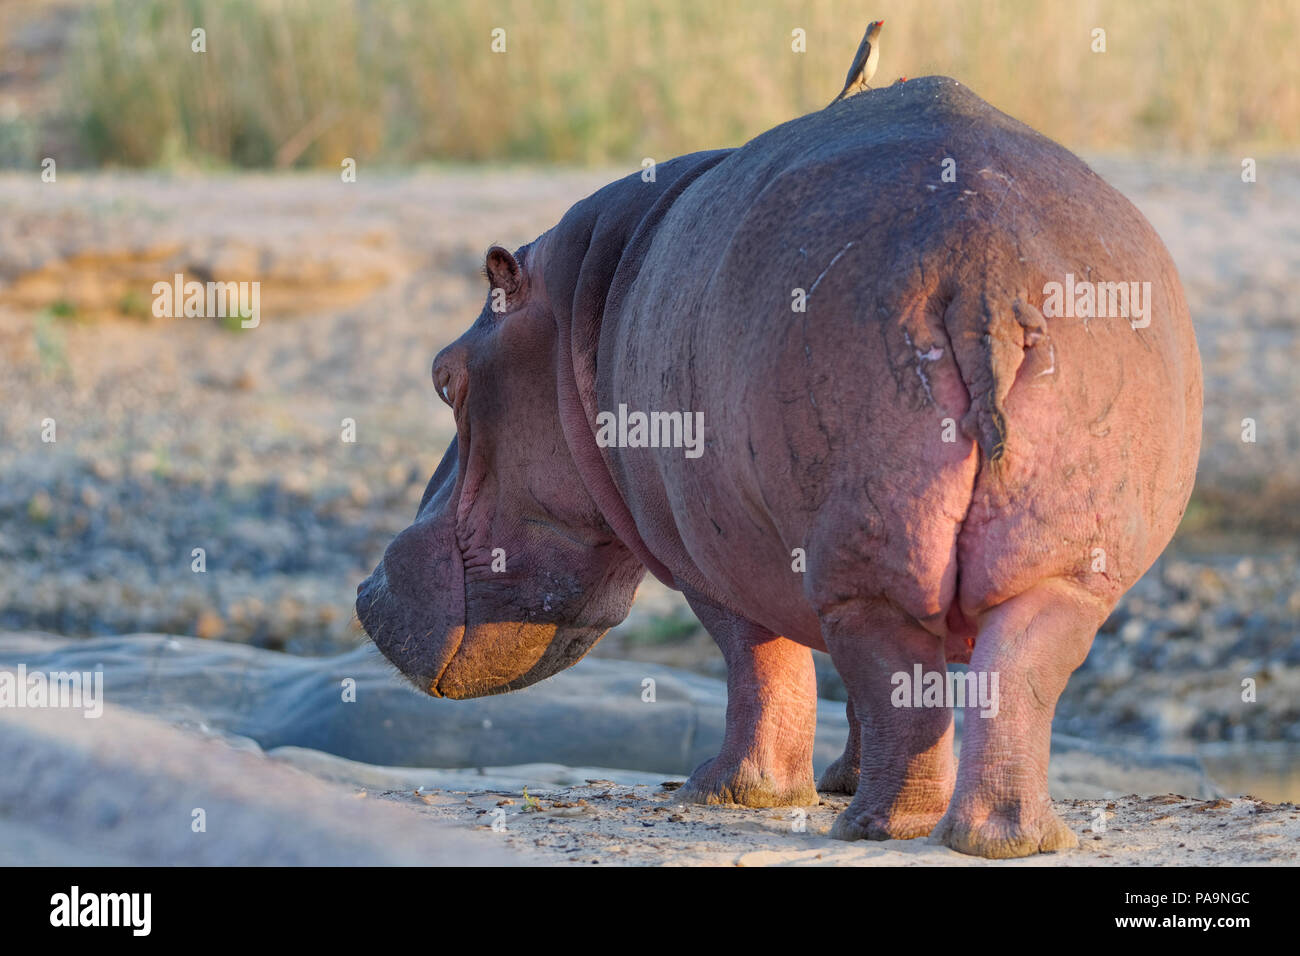 hippopotamus-hippopotamus-amphibius-standing-in-the-riverbed-olifants-with-two-red-billed-oxpeckers-on-its-back-kruger-national-park-south-africa-PA9NGC.jpg